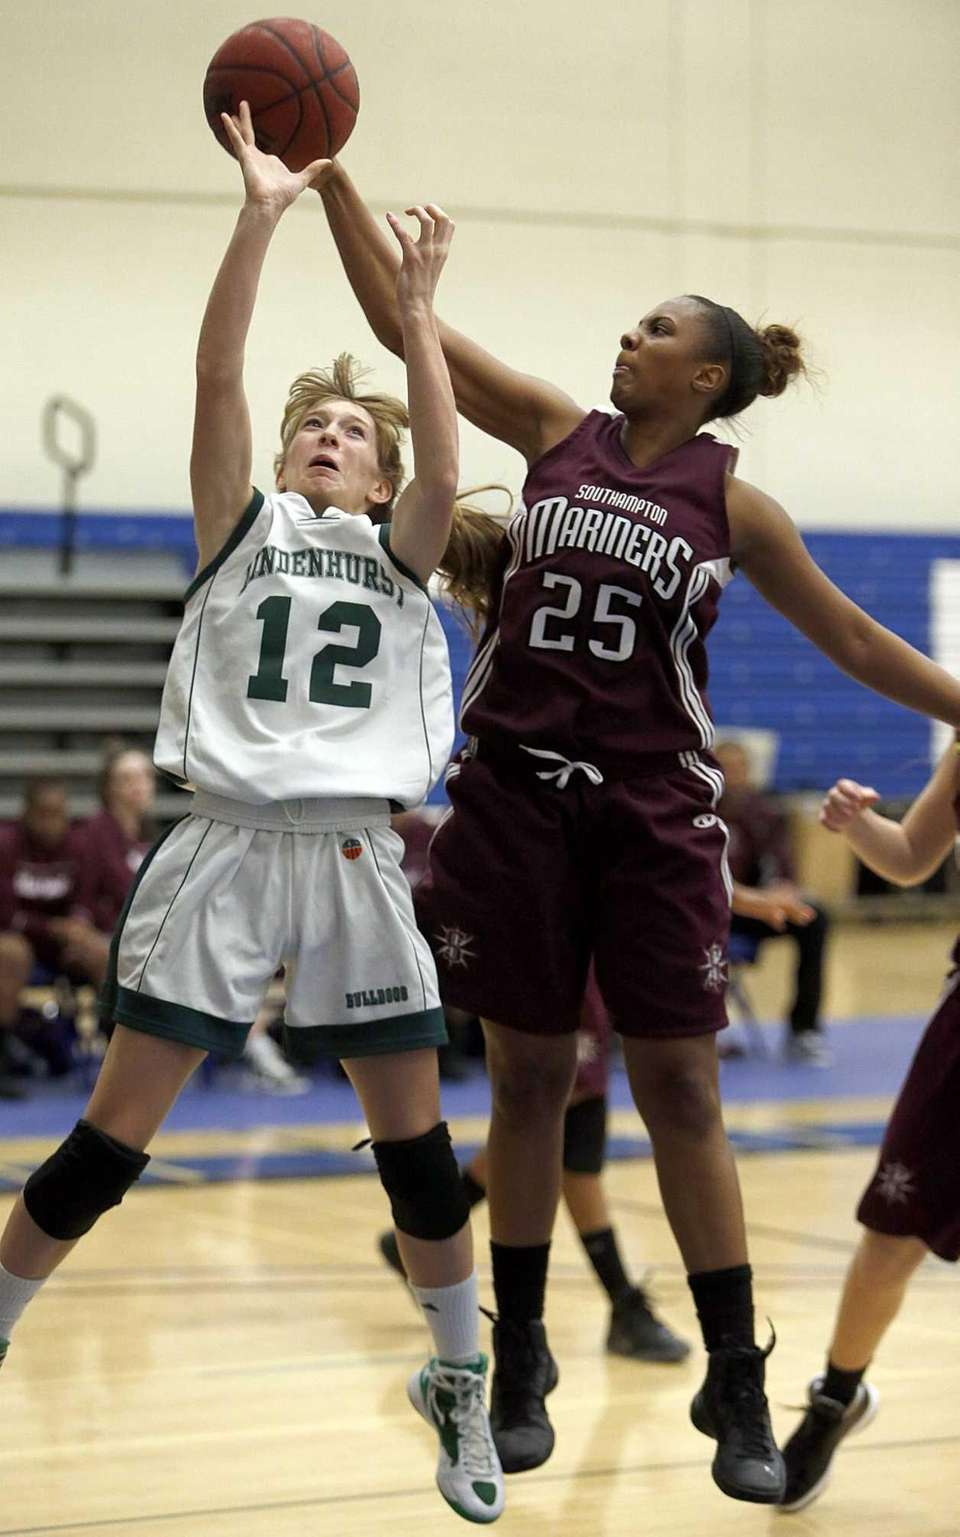 Southampton's Kesi Goree blocks a shot by Lindenhurst's